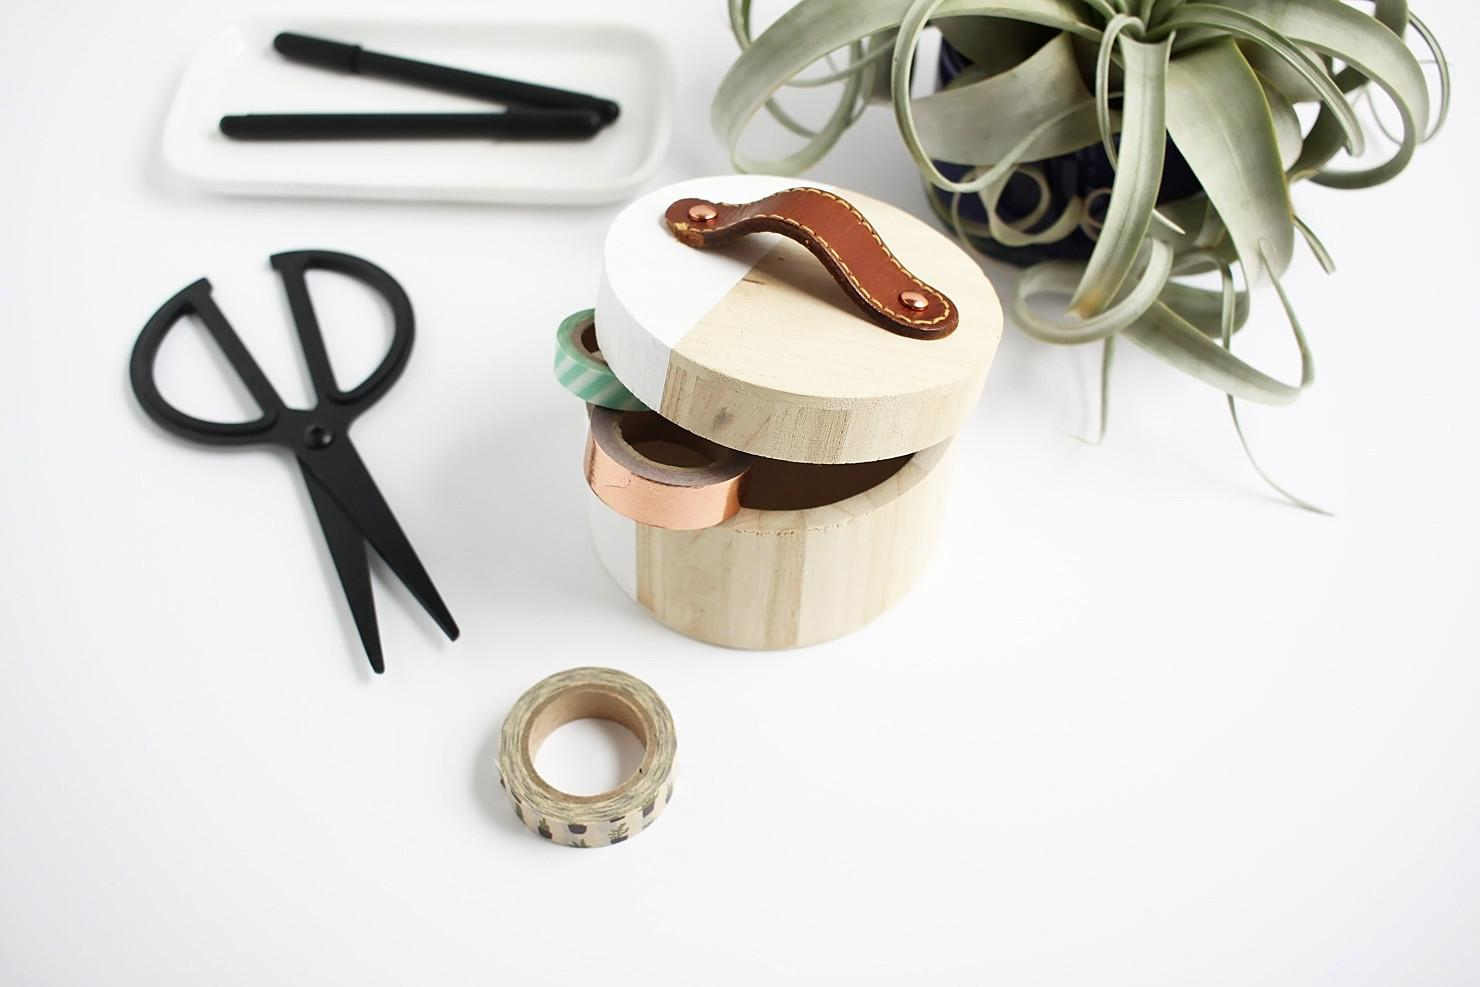 Diy Leather Box Handles Using Thrifted Belts Idle Hands Awake